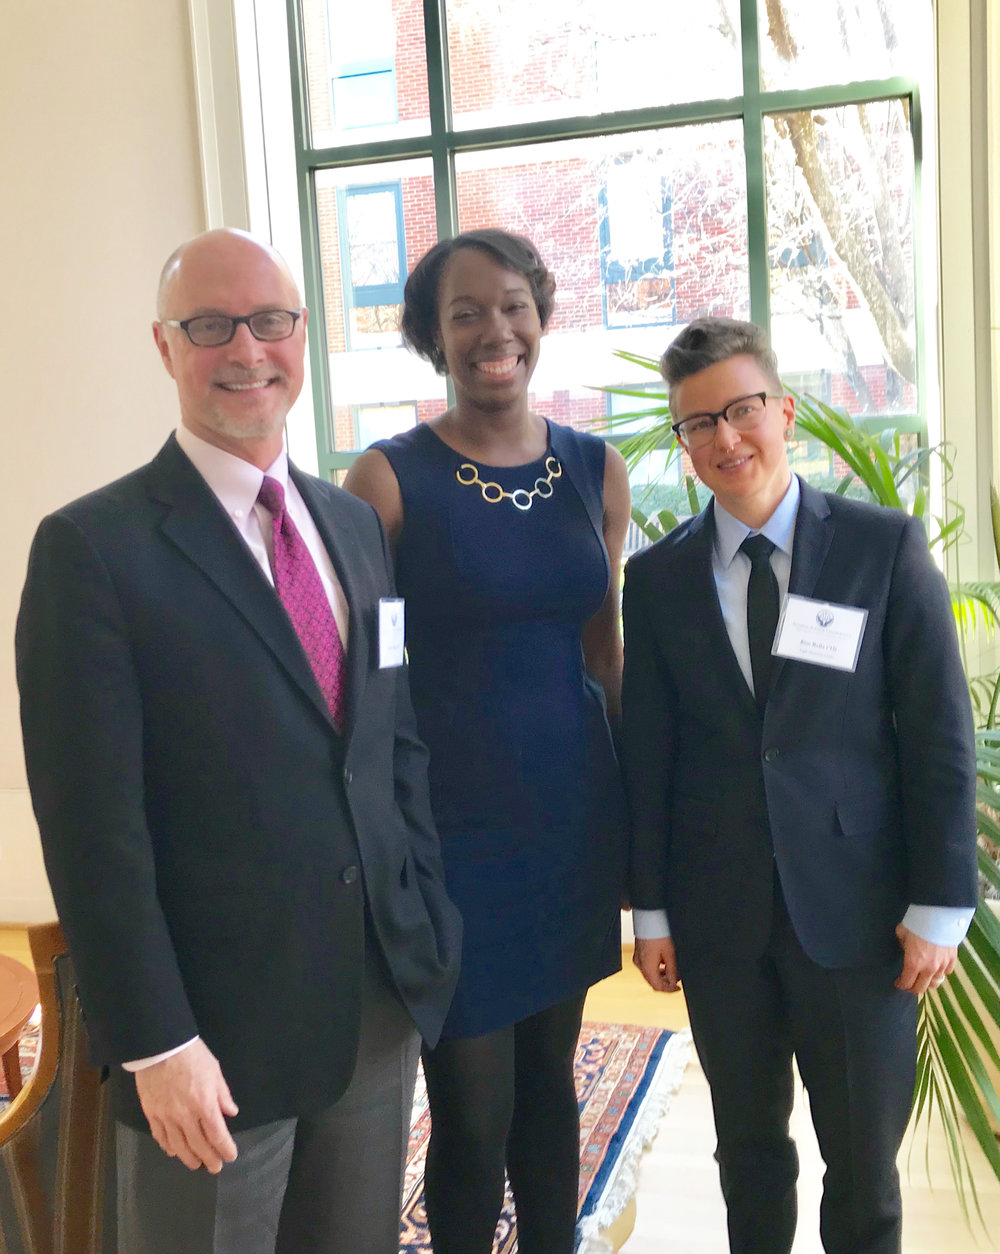 From left to right: 2018 Shaping Justice Award recipients Jeff Kerr '87, Jeree Thomas '11, and Kim Rolla '13. Photo courtesy of Cheryl Harris.